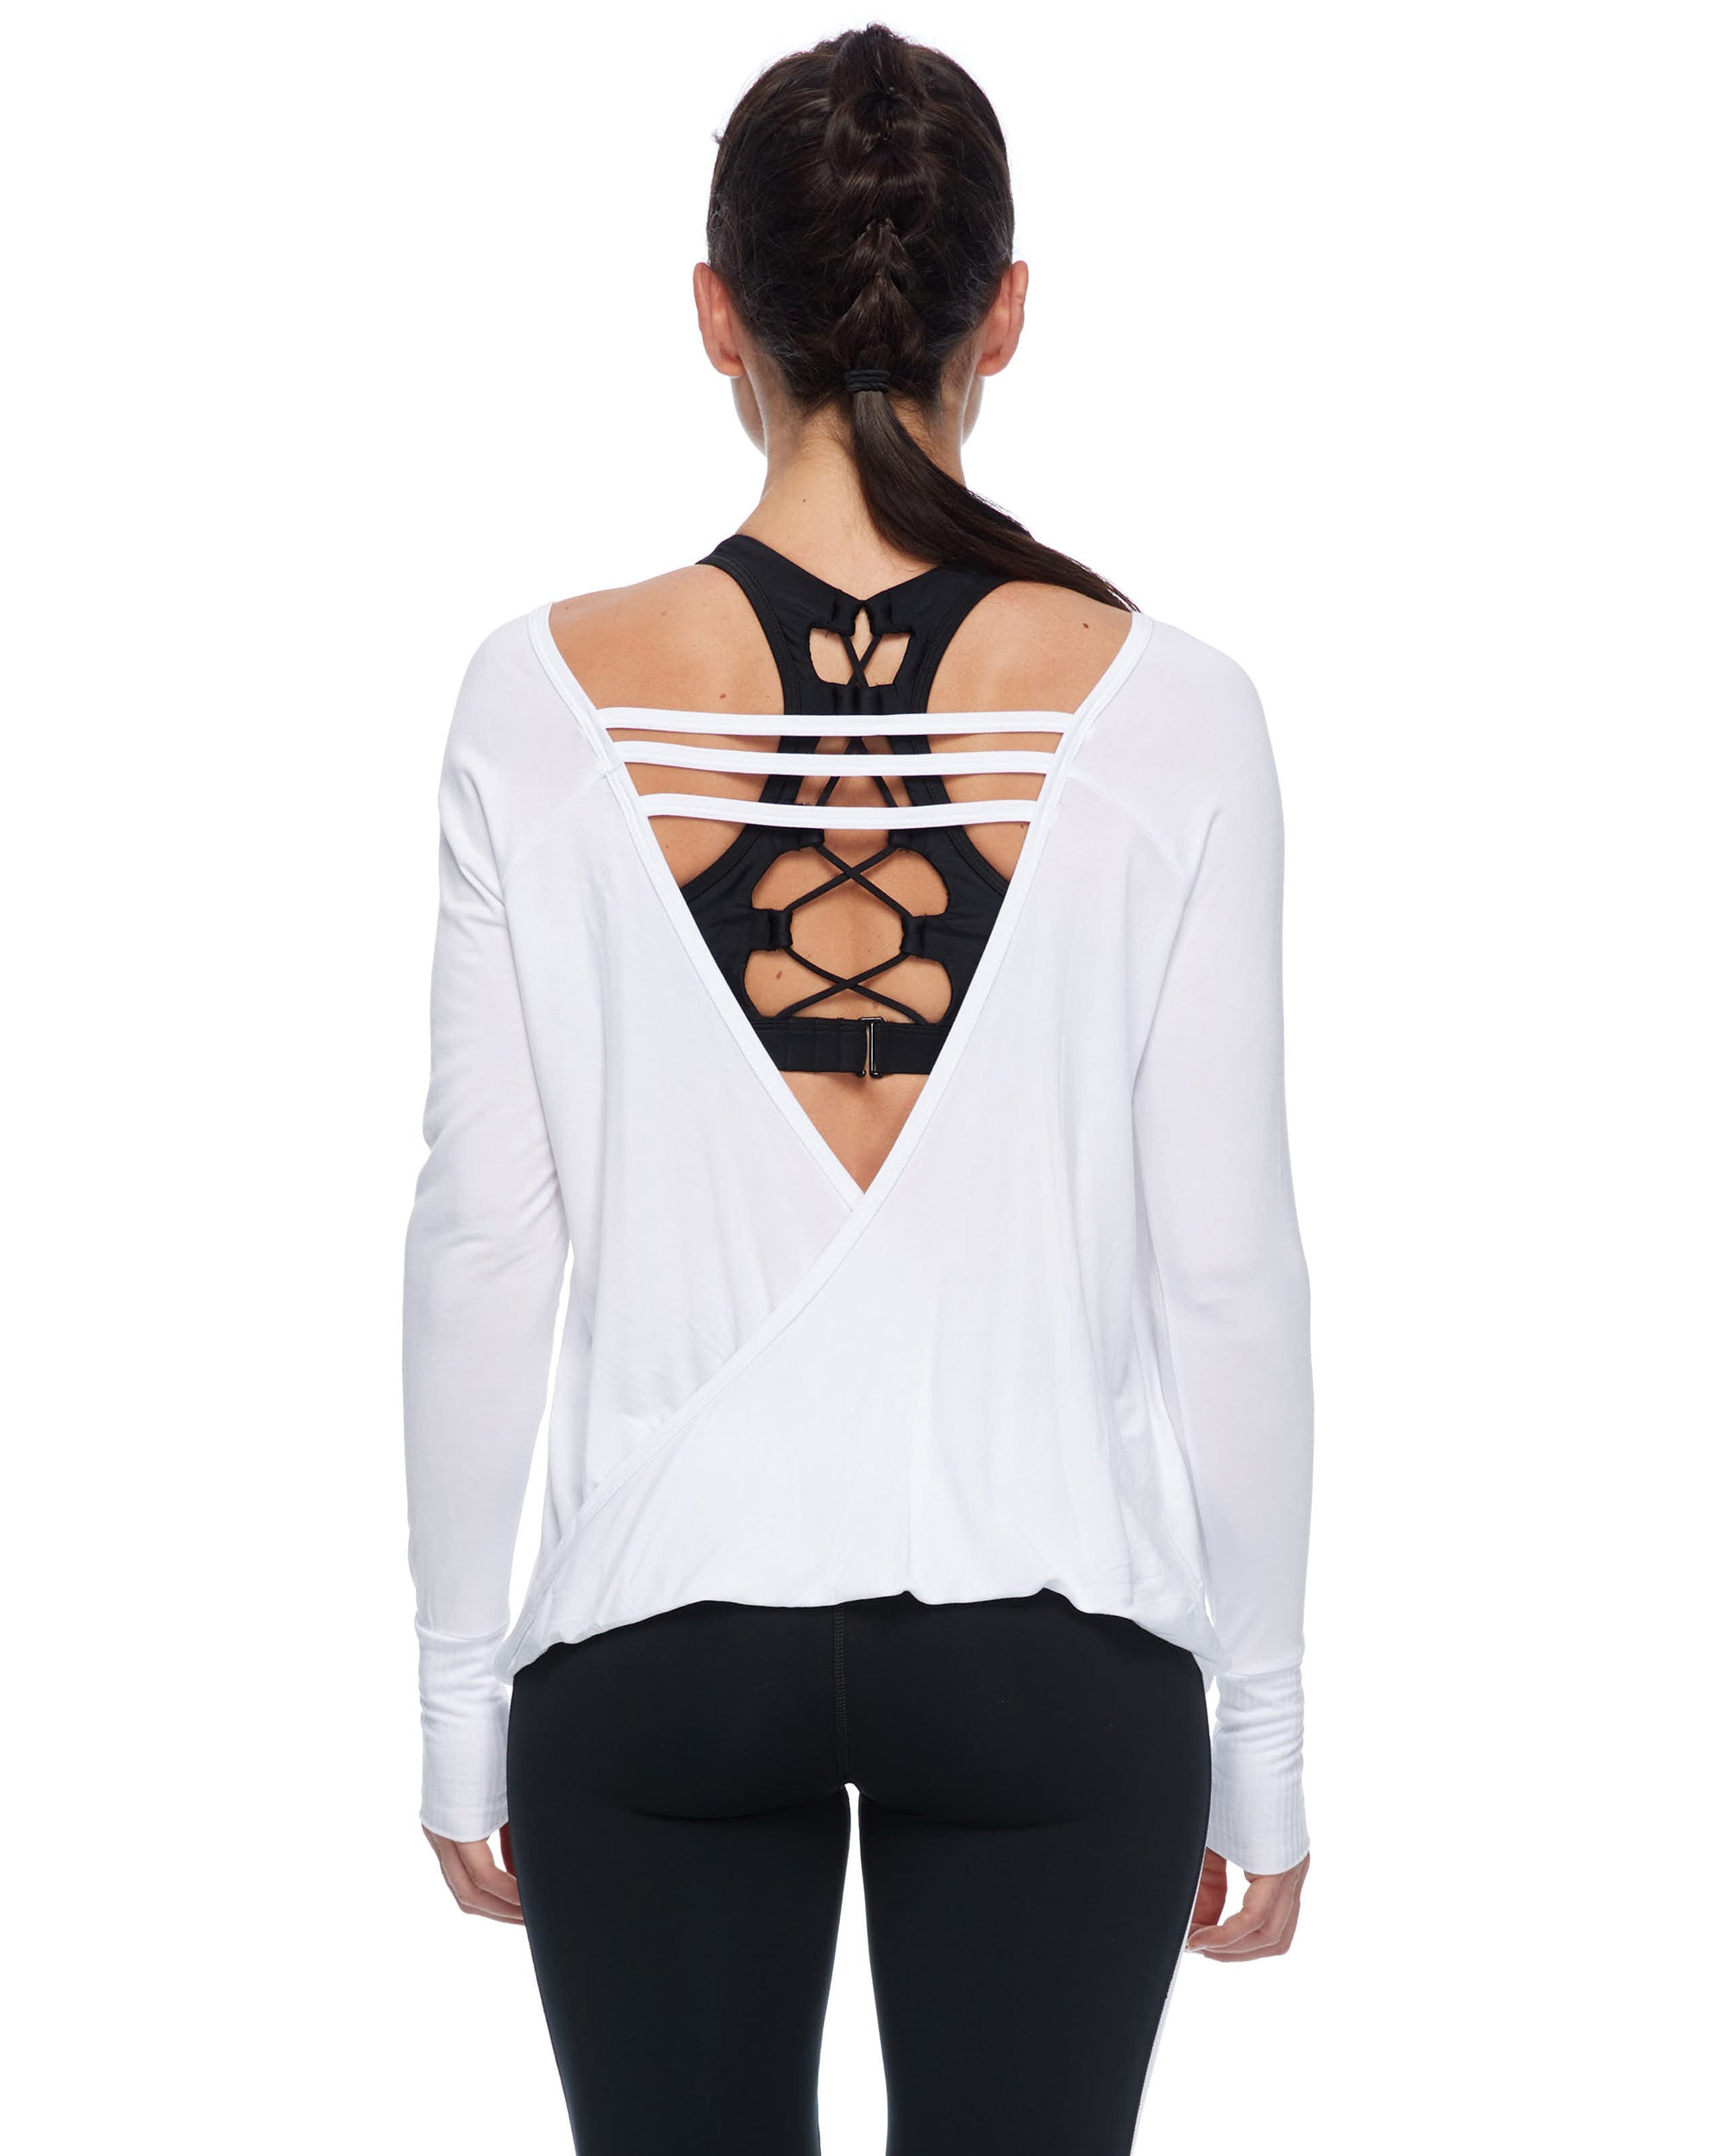 Booderee Cybele Long-Sleeved Shirt - White